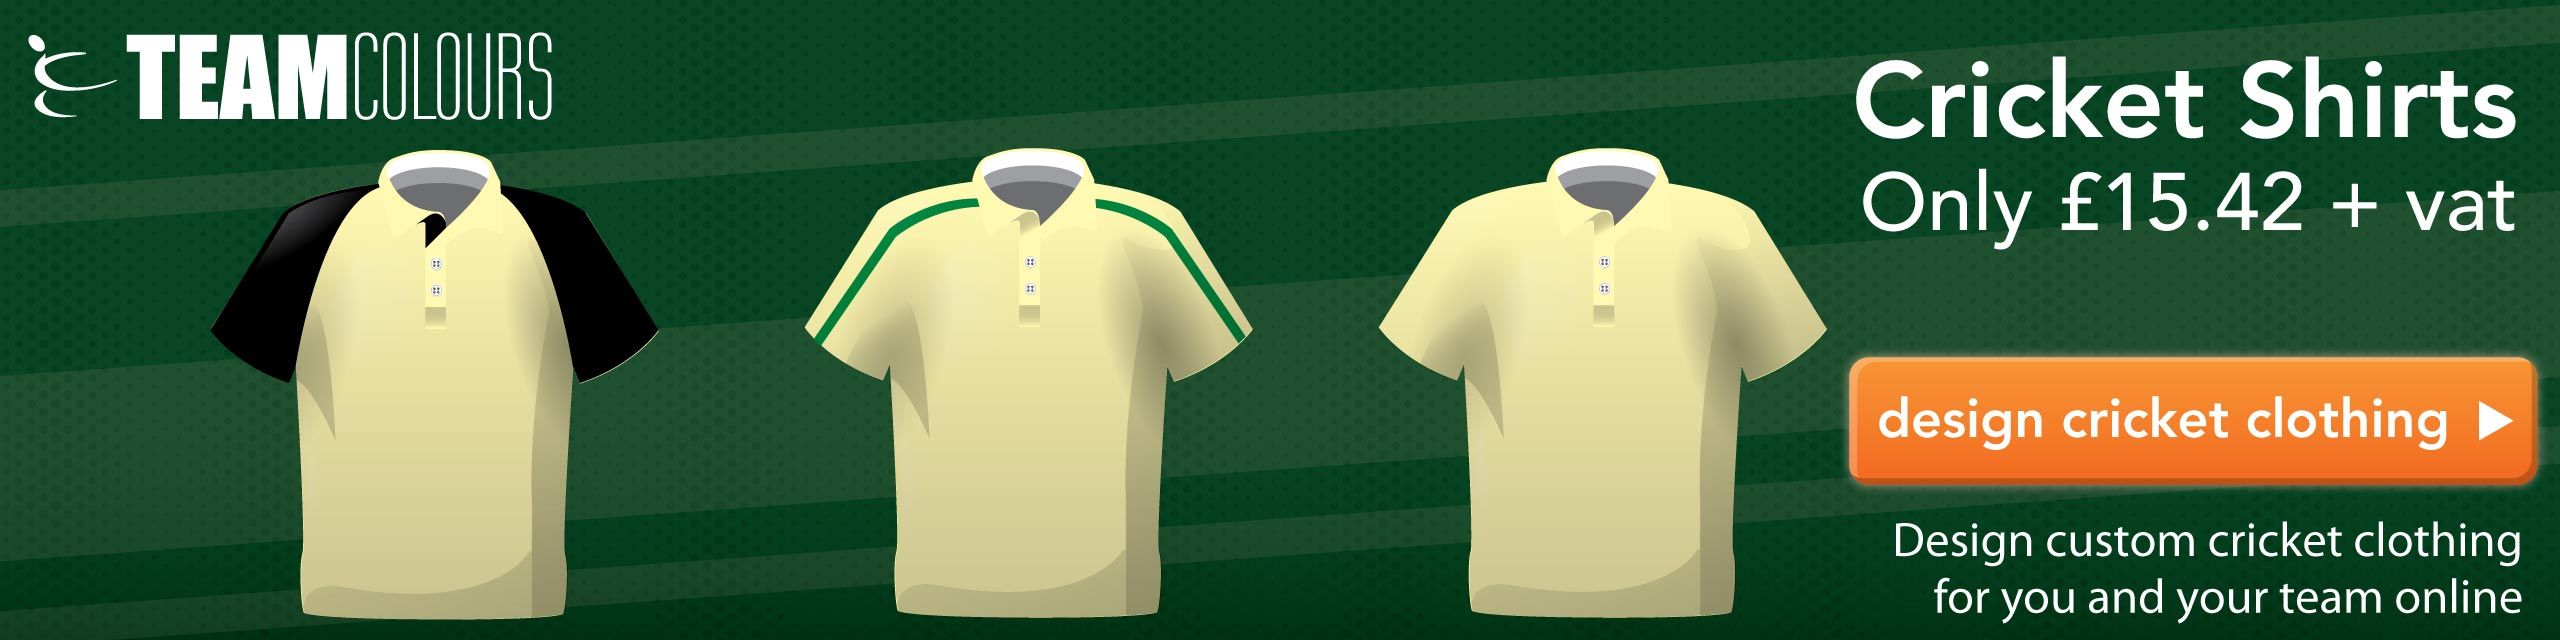 Design you own cricket shirts and trousers at Team Colours